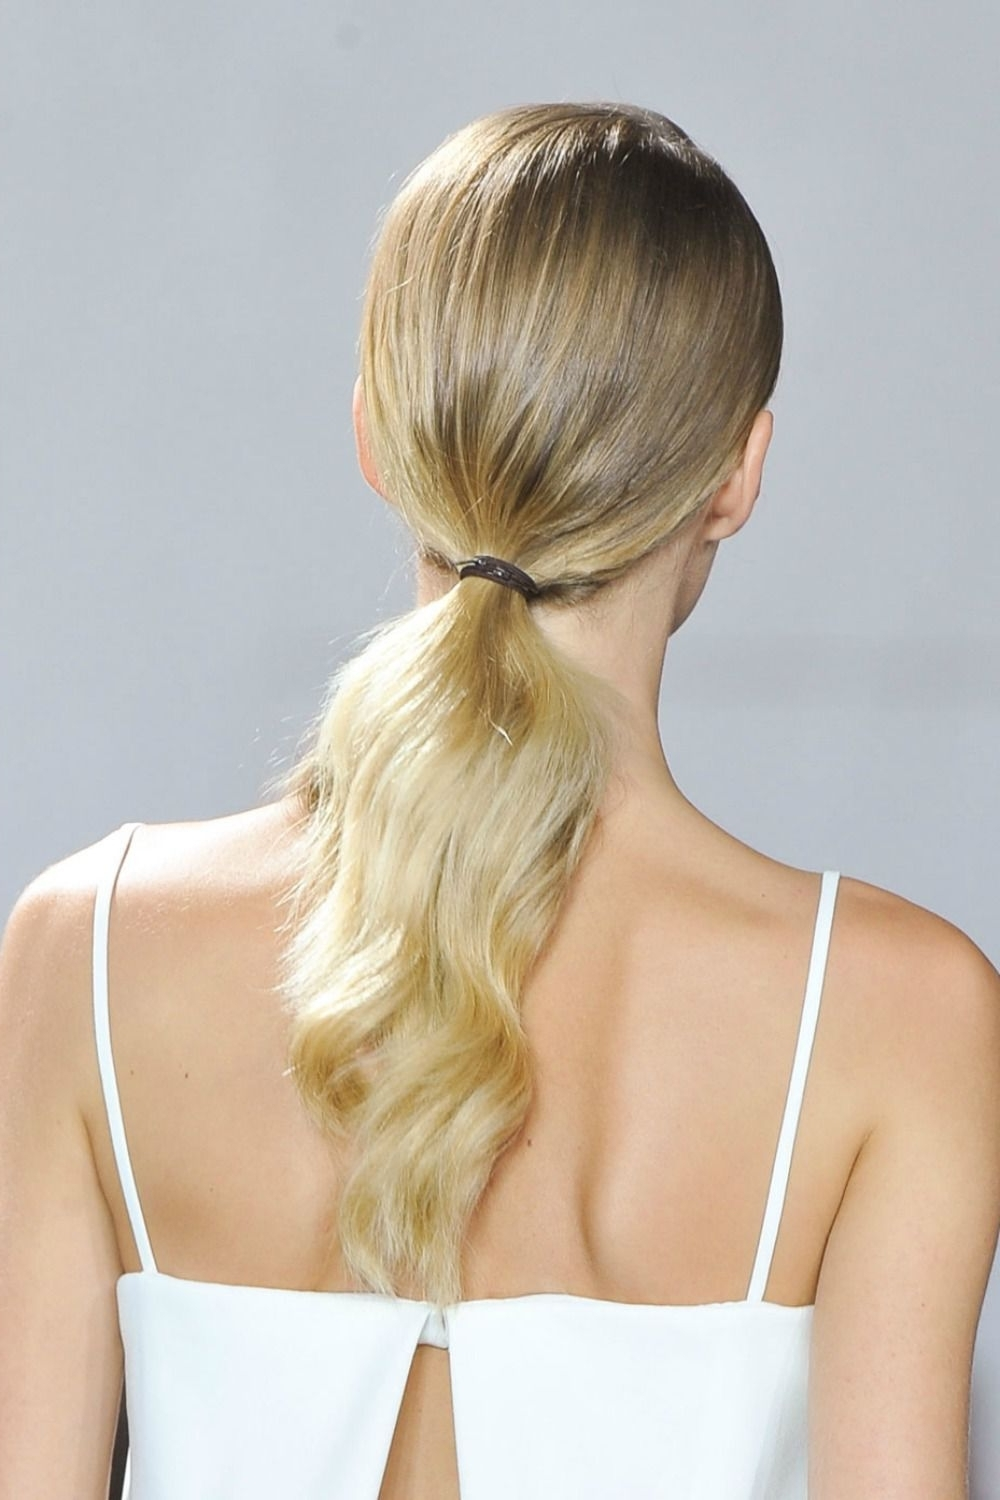 20 Ponytail Hairstyles – Easy Ponytail Ideas You Should This Summer With Recent Sleek And Shiny Ponytail Hairstyles (View 2 of 20)